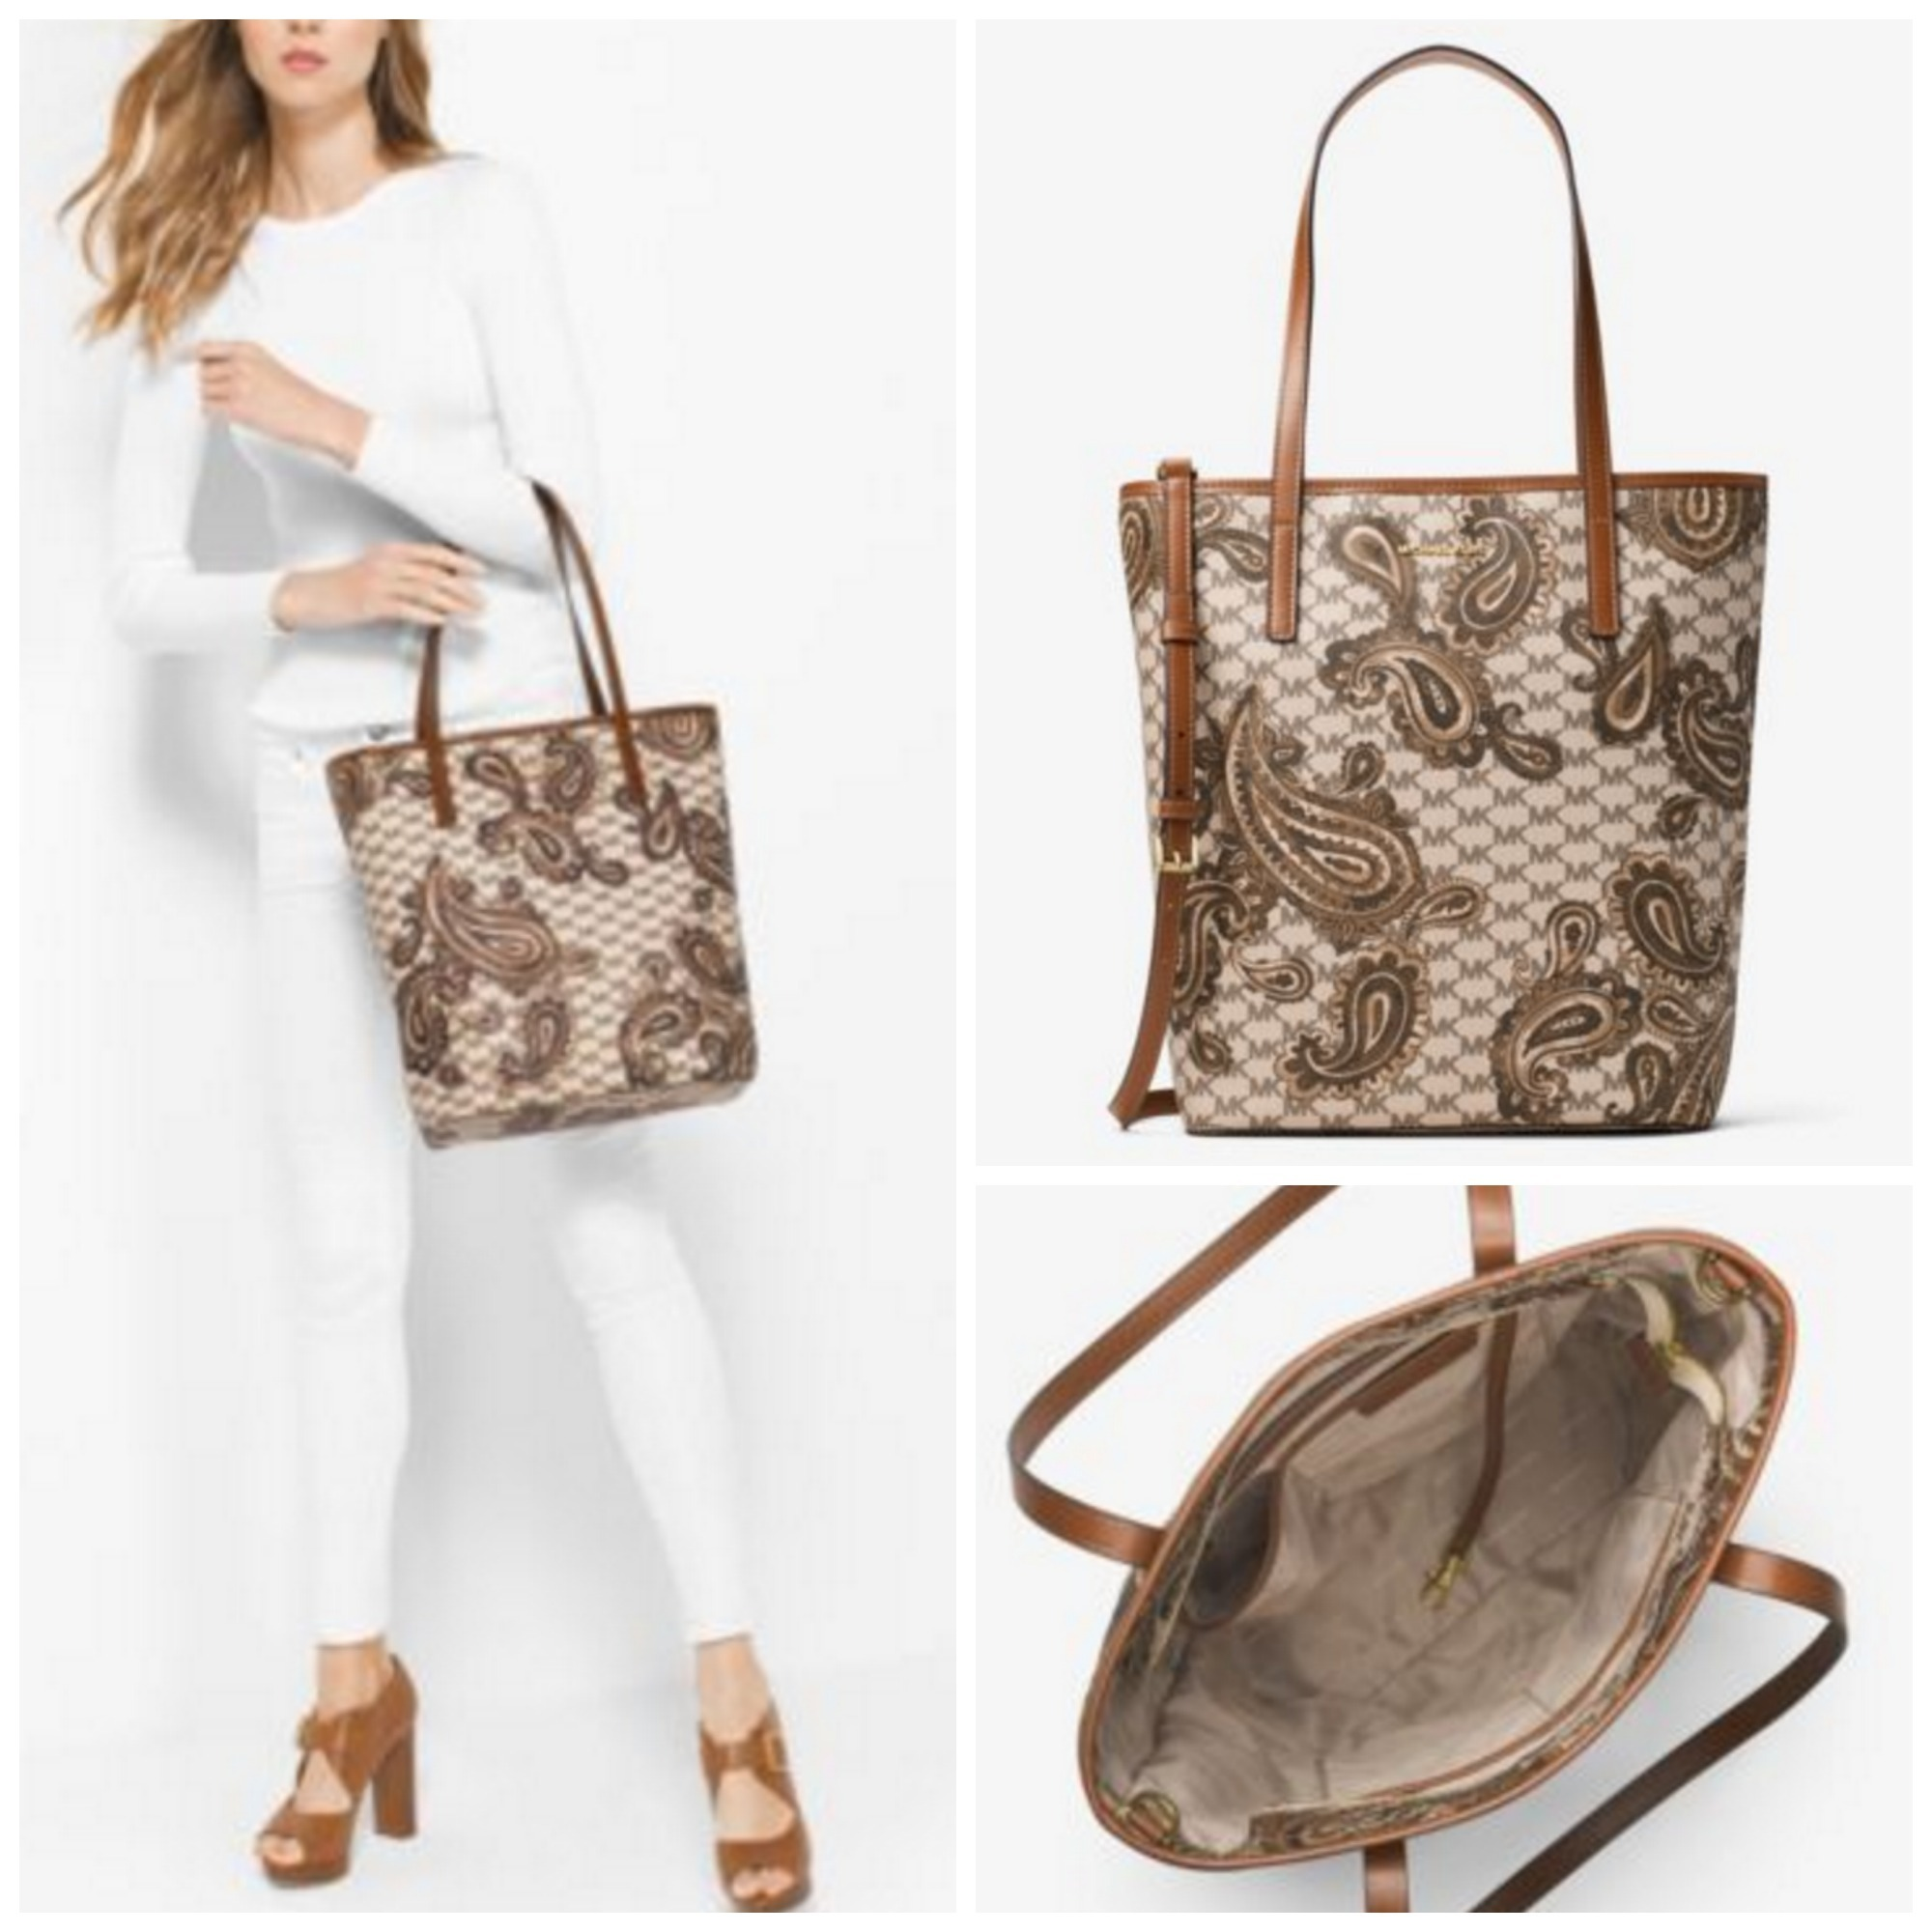 b5e24e228f9a Michael Kors MK MICHAEL KORS Emry Large North South Heritage Paisley Tote  by QueenOfStyle - BUYMA